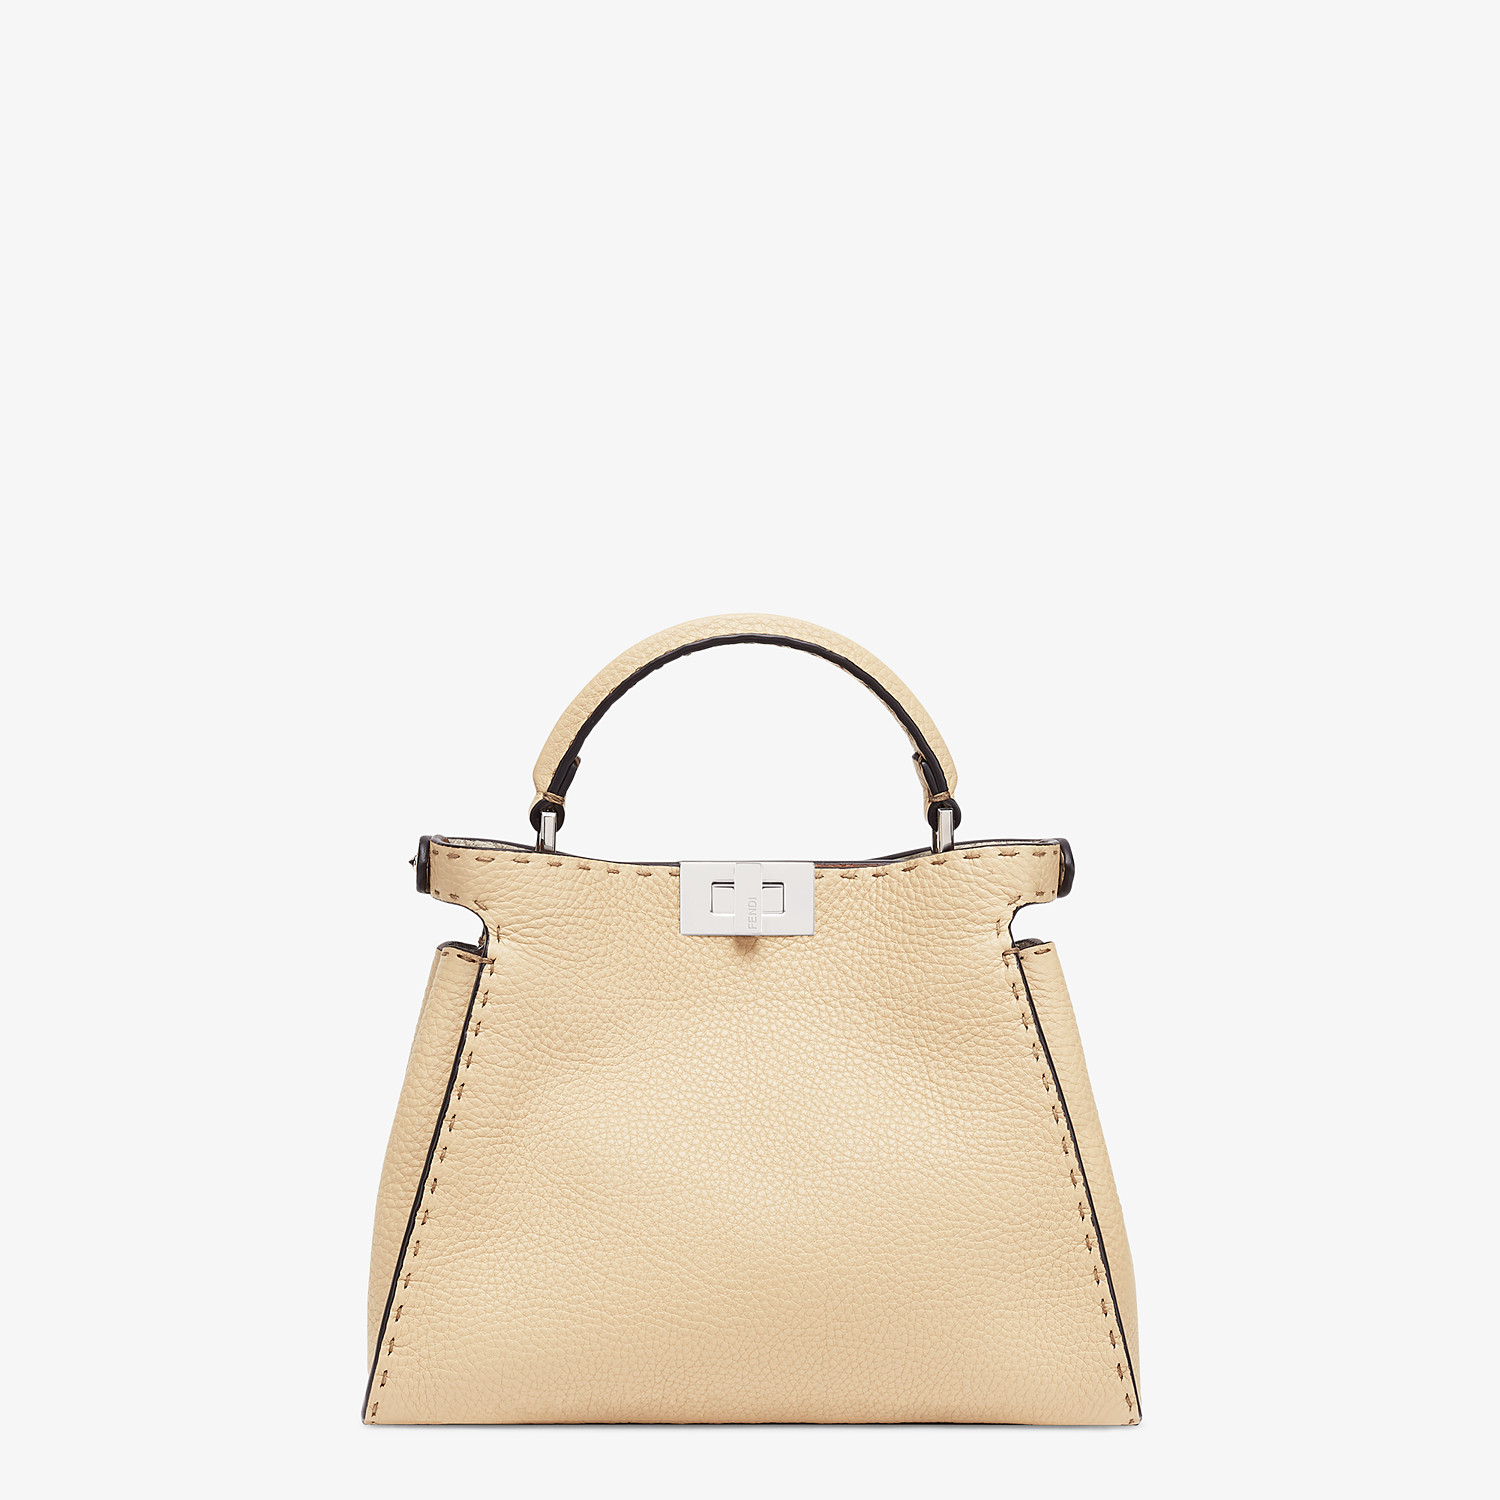 FENDI PEEKABOO ICONIC ESSENTIALLY - Beige Cuoio Romano leather bag - view 4 detail